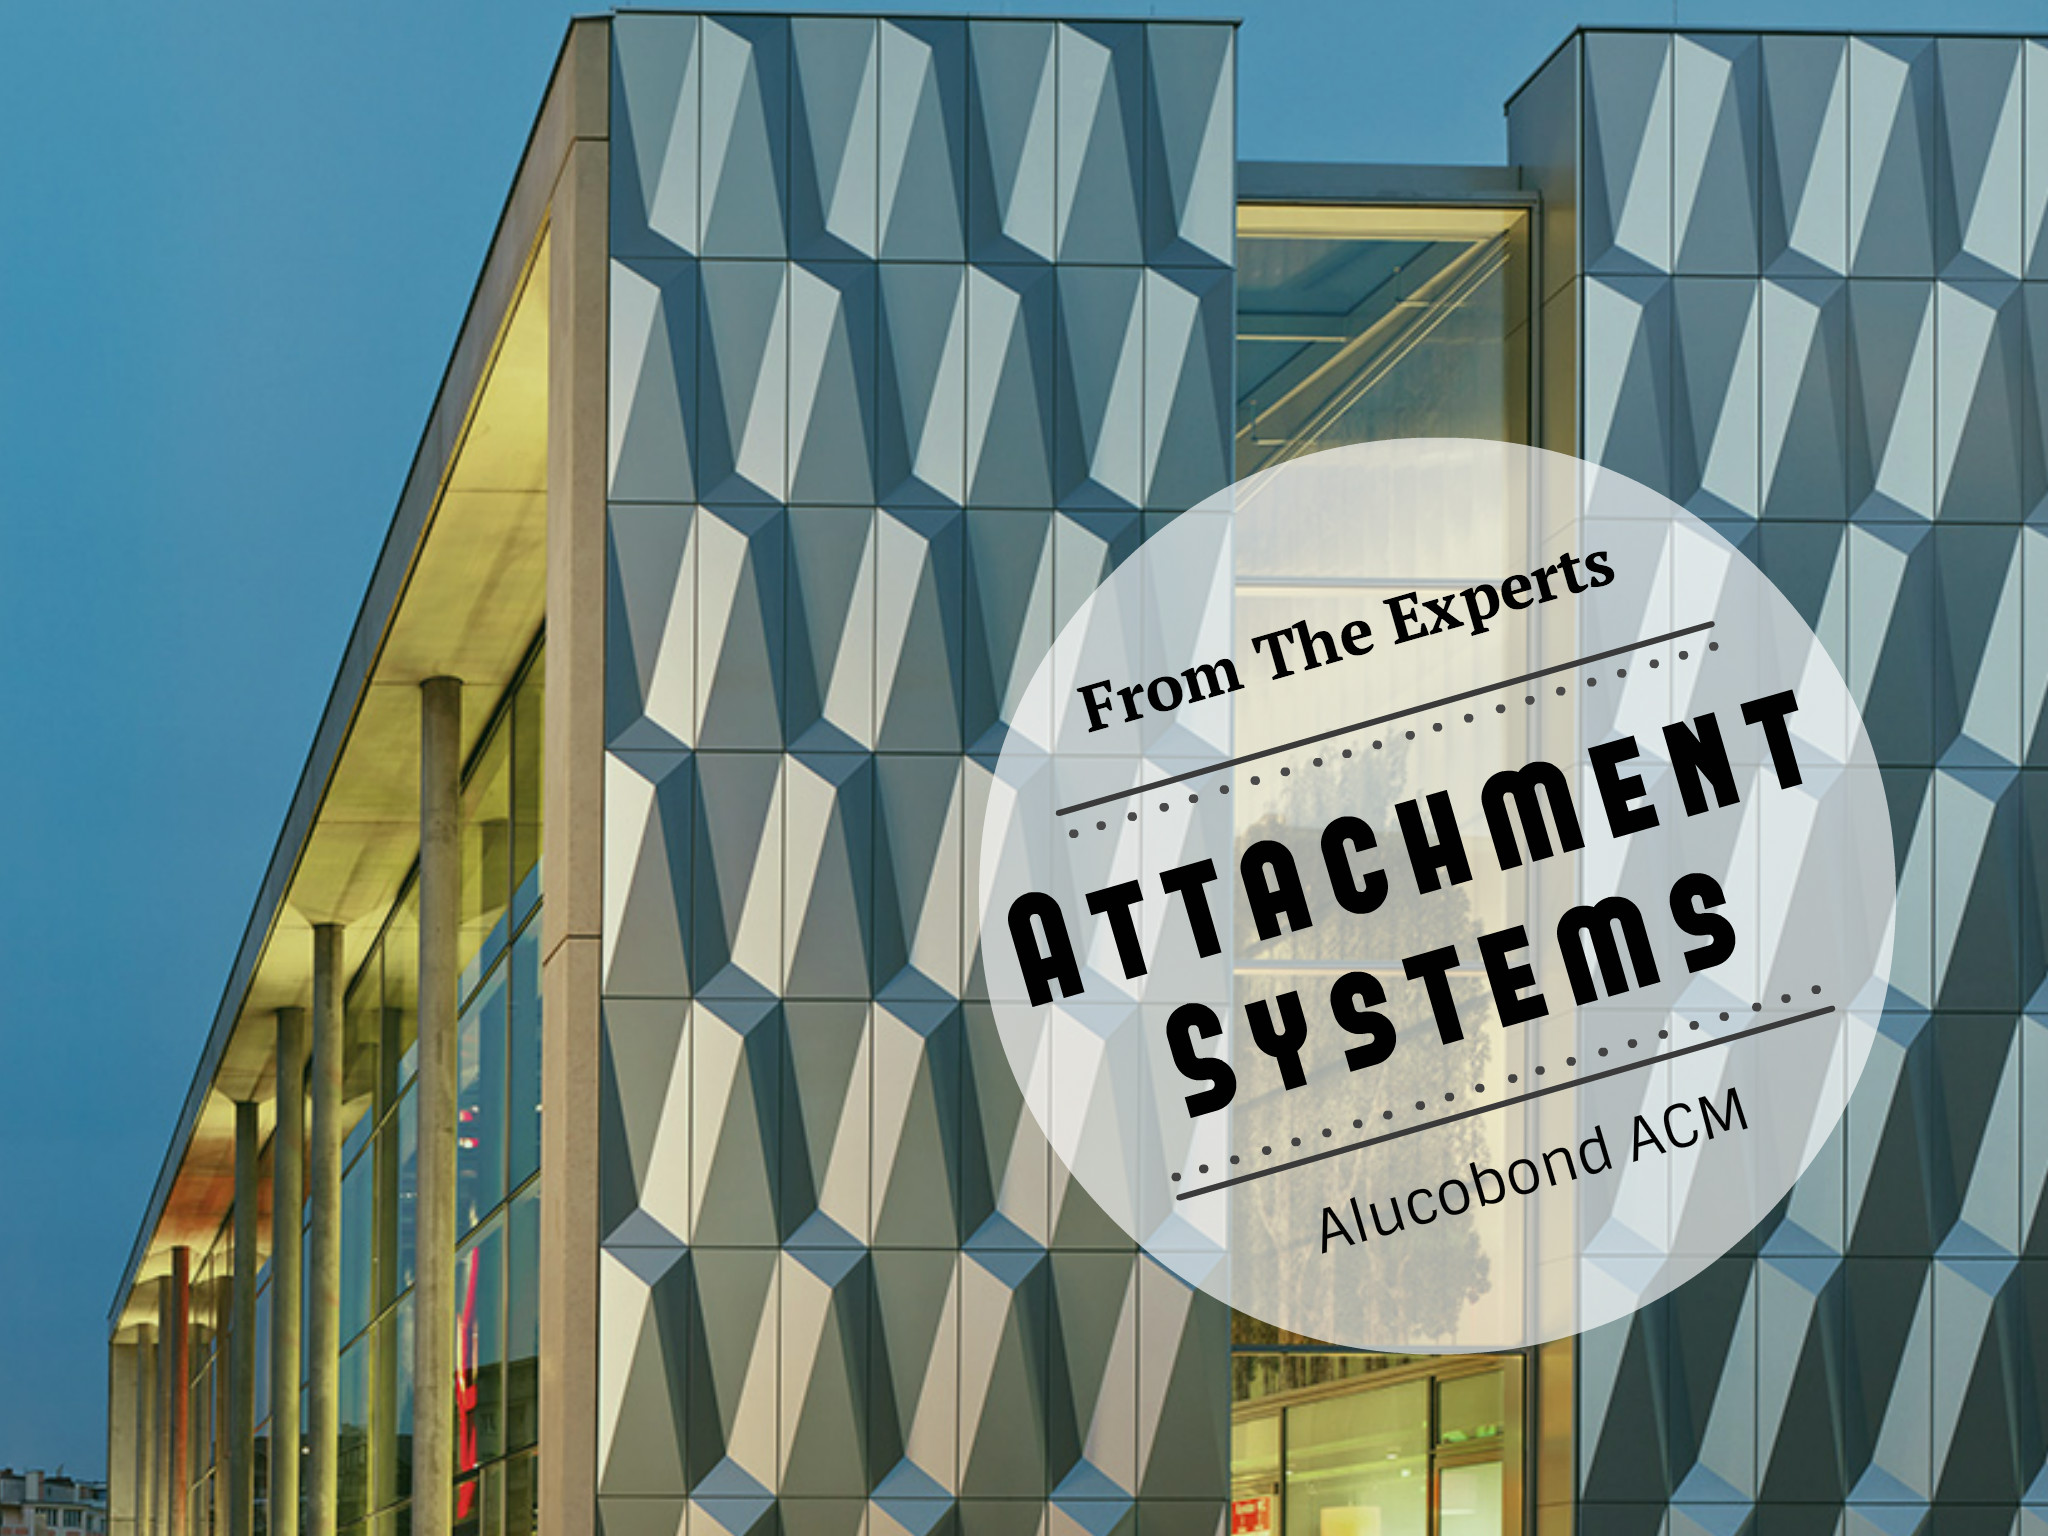 Attachment Systems Alucobond Aluminum Composite Material ACM